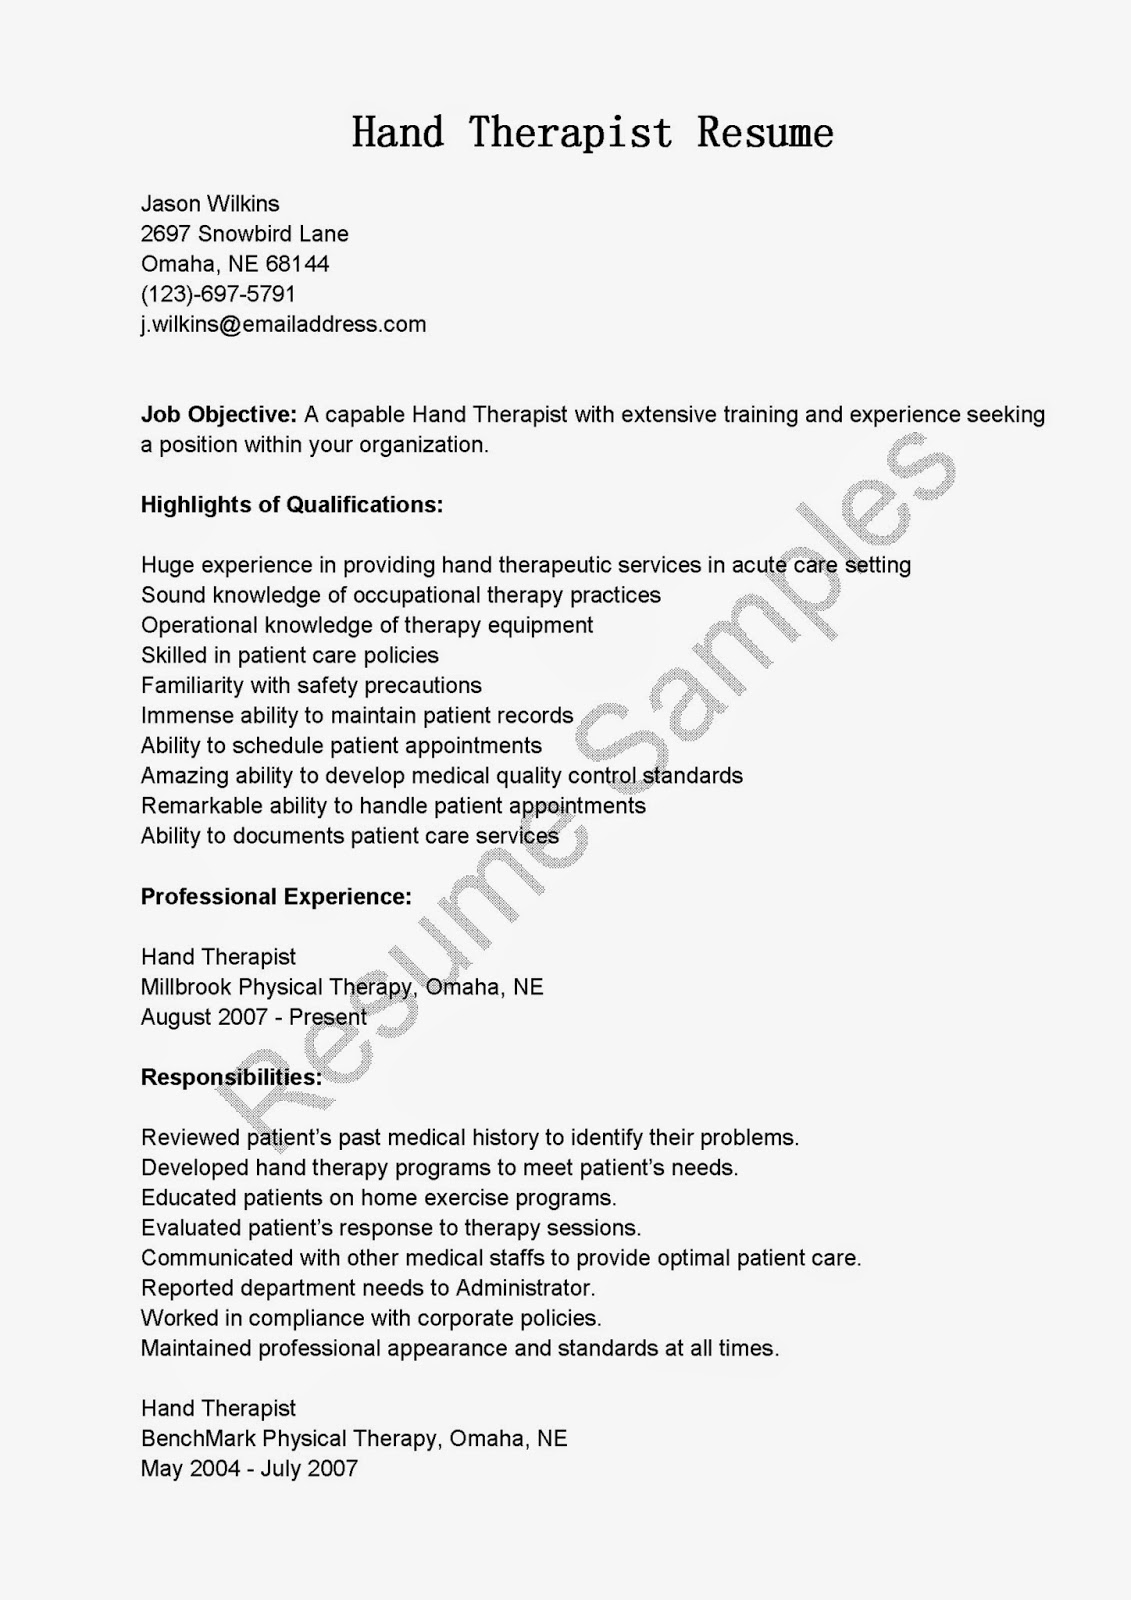 resume samples  hand therapist resume sample